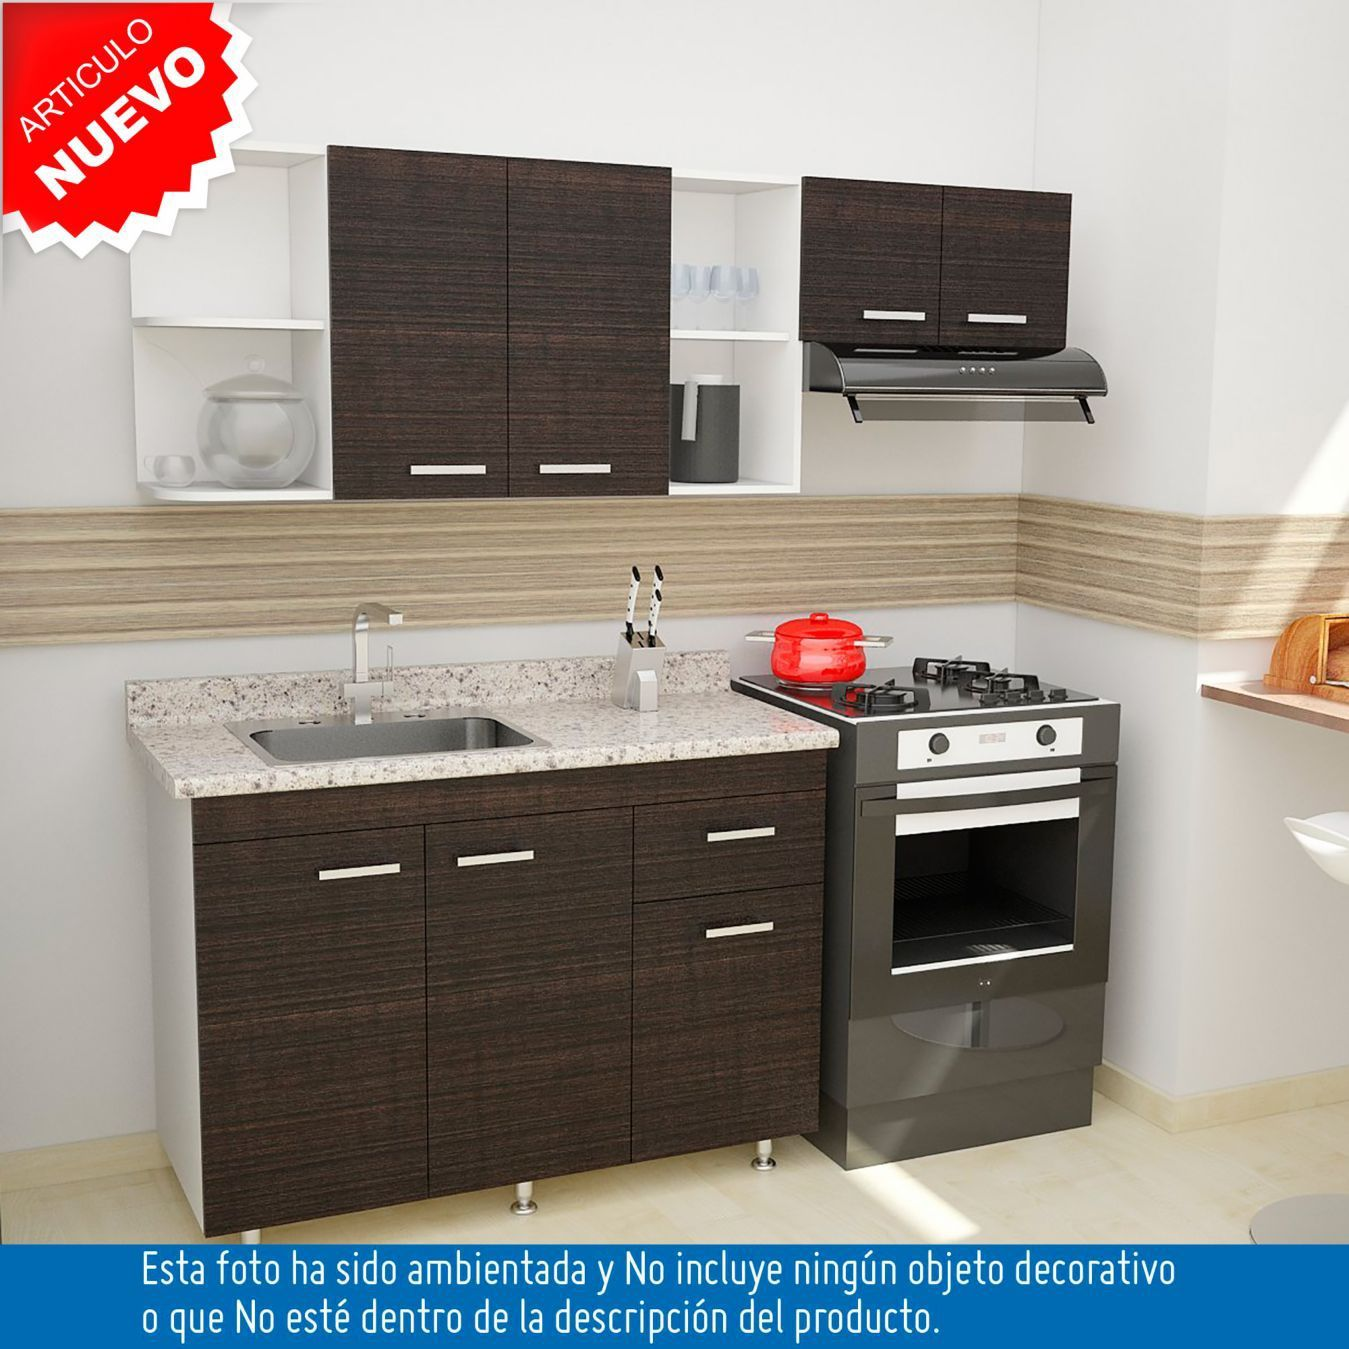 Resultado de imagen de cocinas integrales peque as ideas for Cocinas integrales homecenter cali